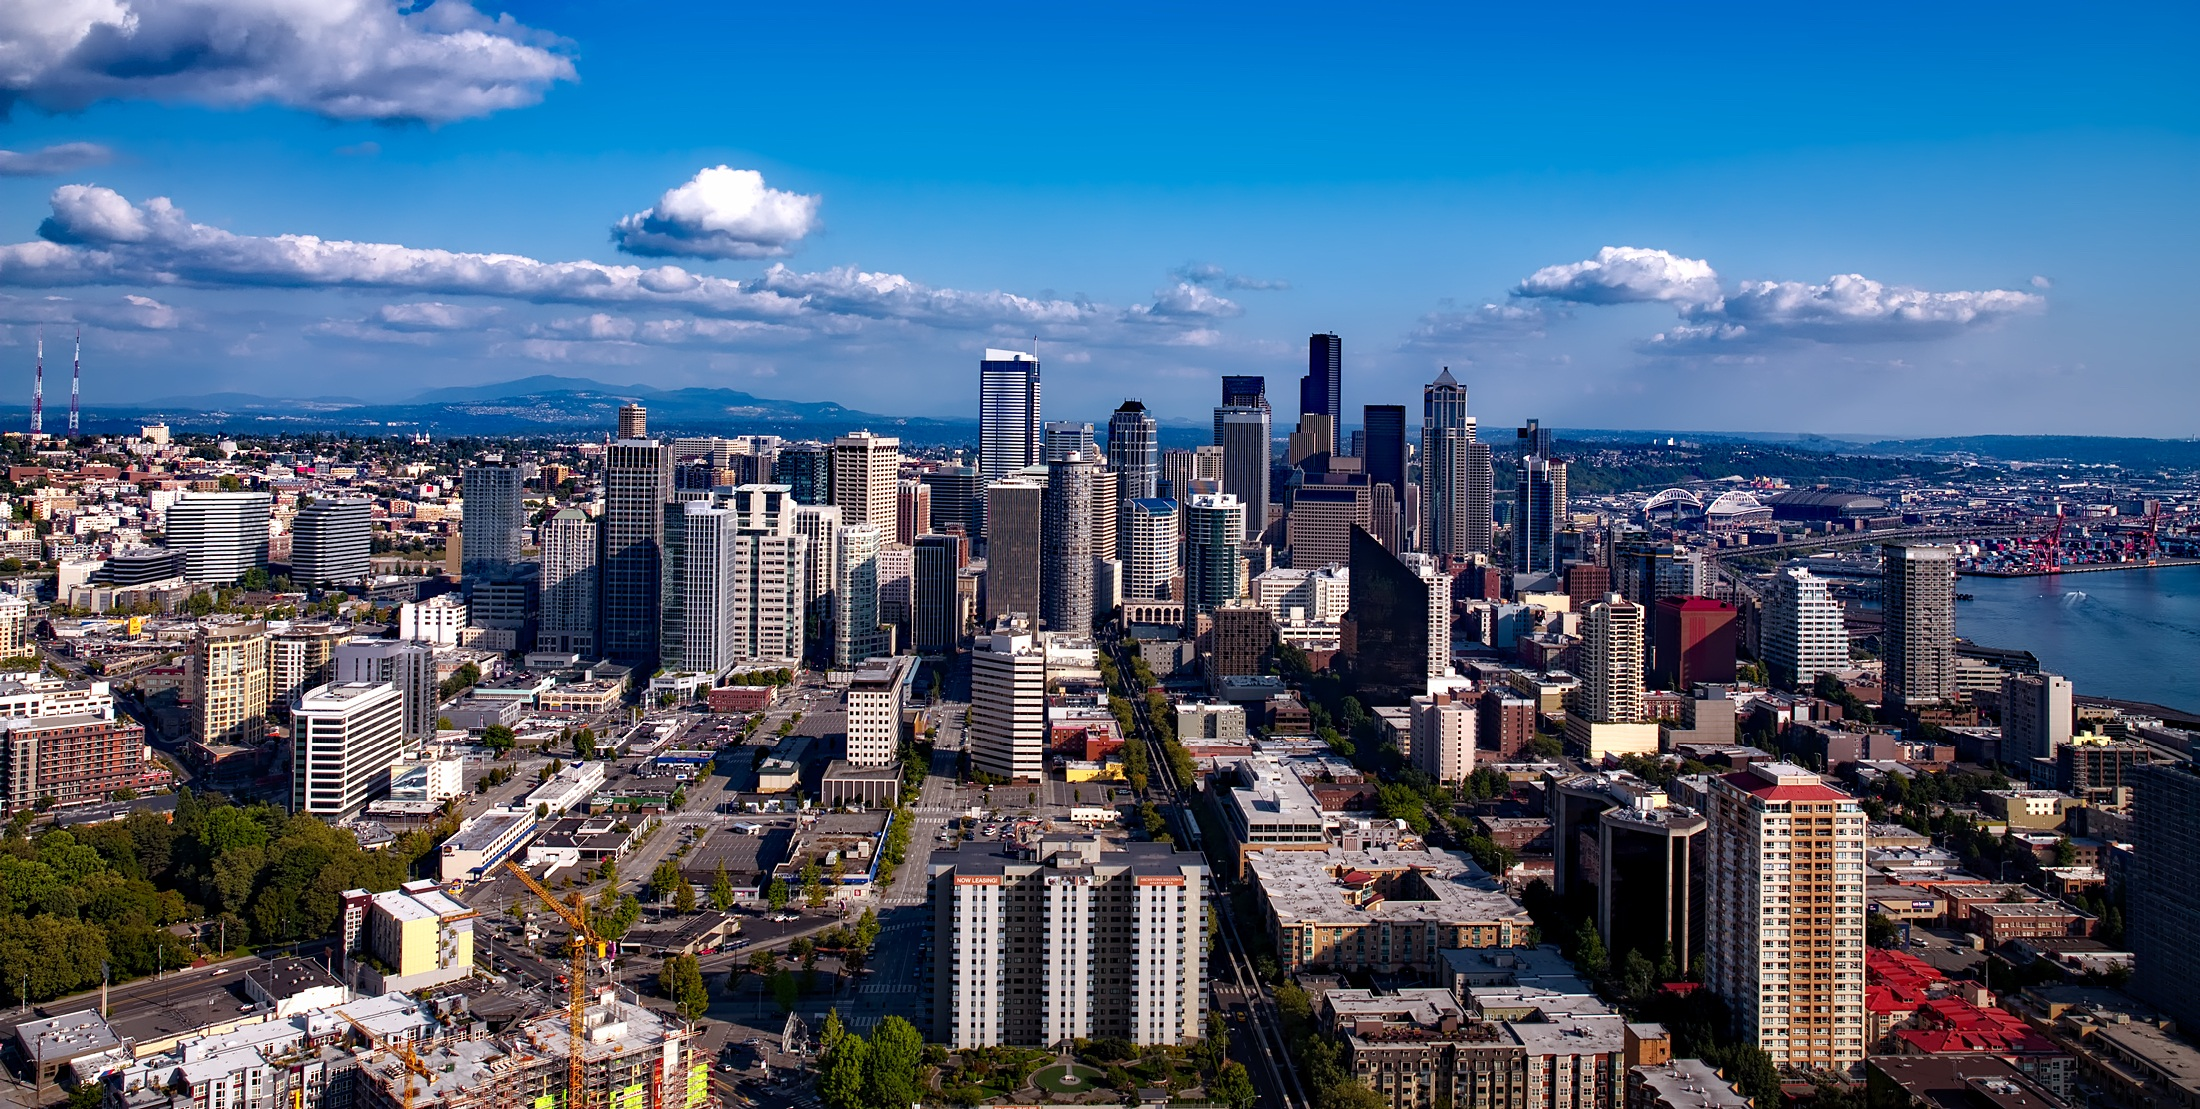 Aerial Photography of Buildings during Daytime Free Stock Photo